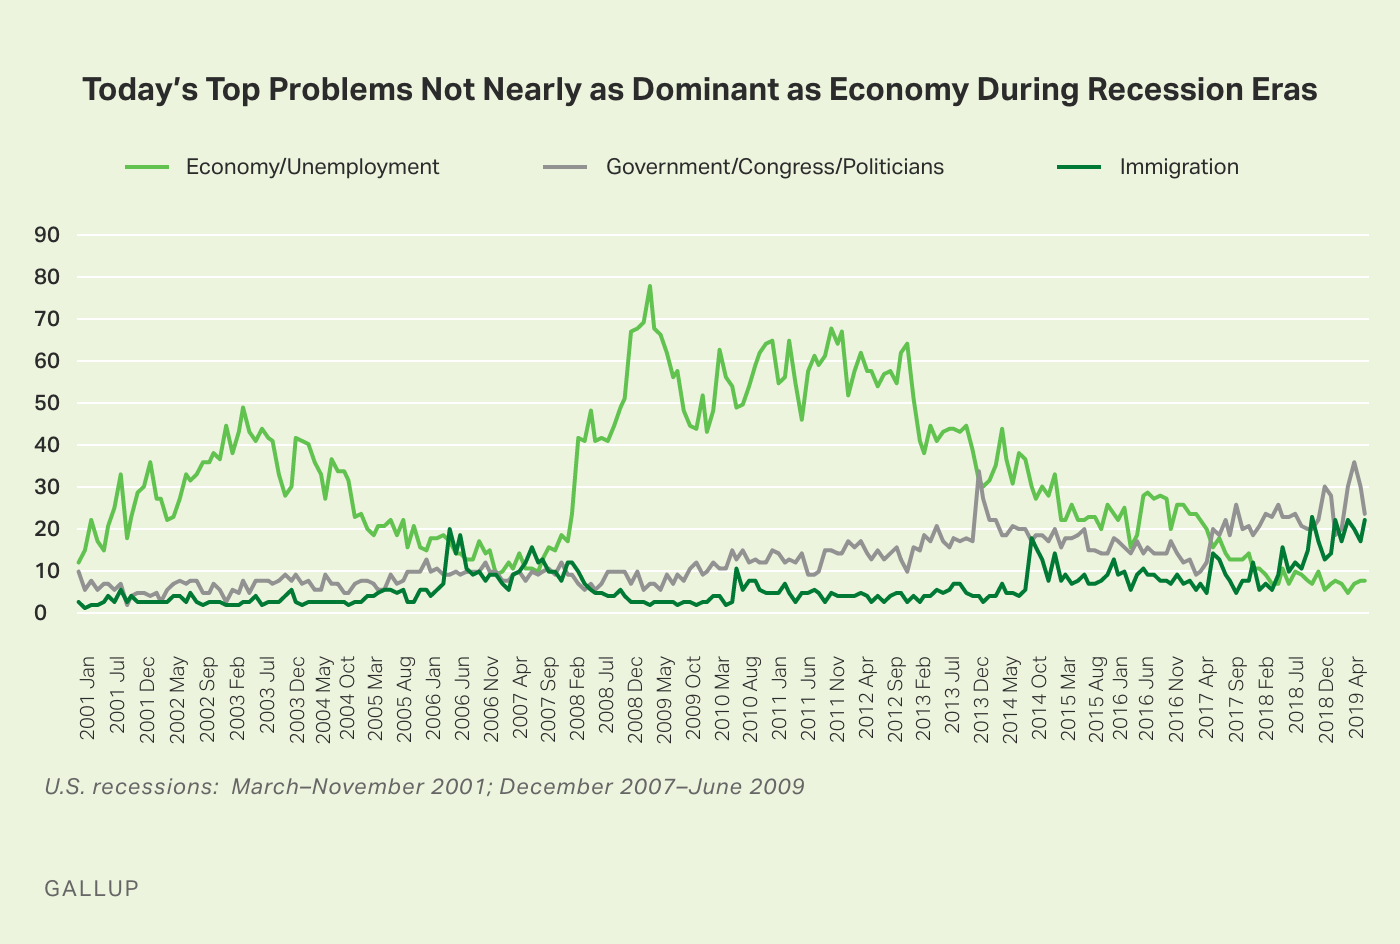 Line graph. High points for mentions of the economy as U.S. top problem far exceeded high points for government and immigrati